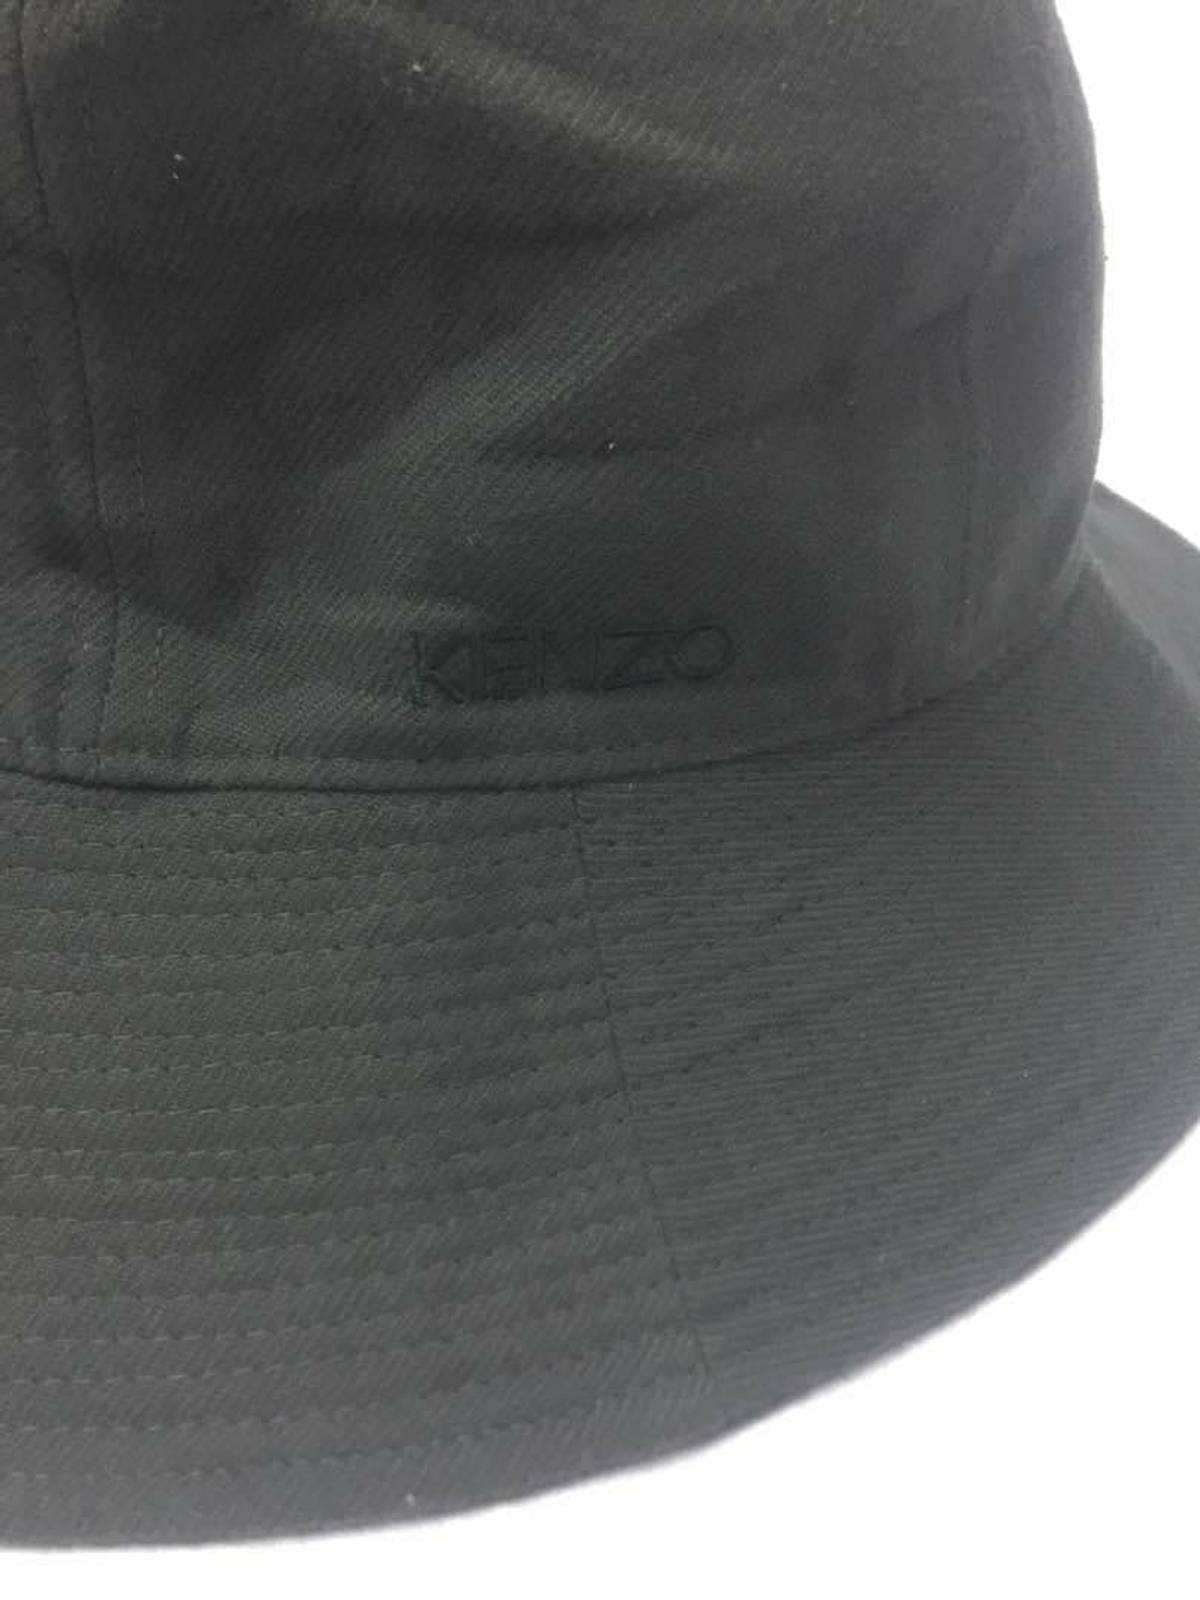 Kenzo 🔥Need Gone Today🔥Kenzo Bucket Hat Size one size - Hats for ... 8bef3f5f4fb